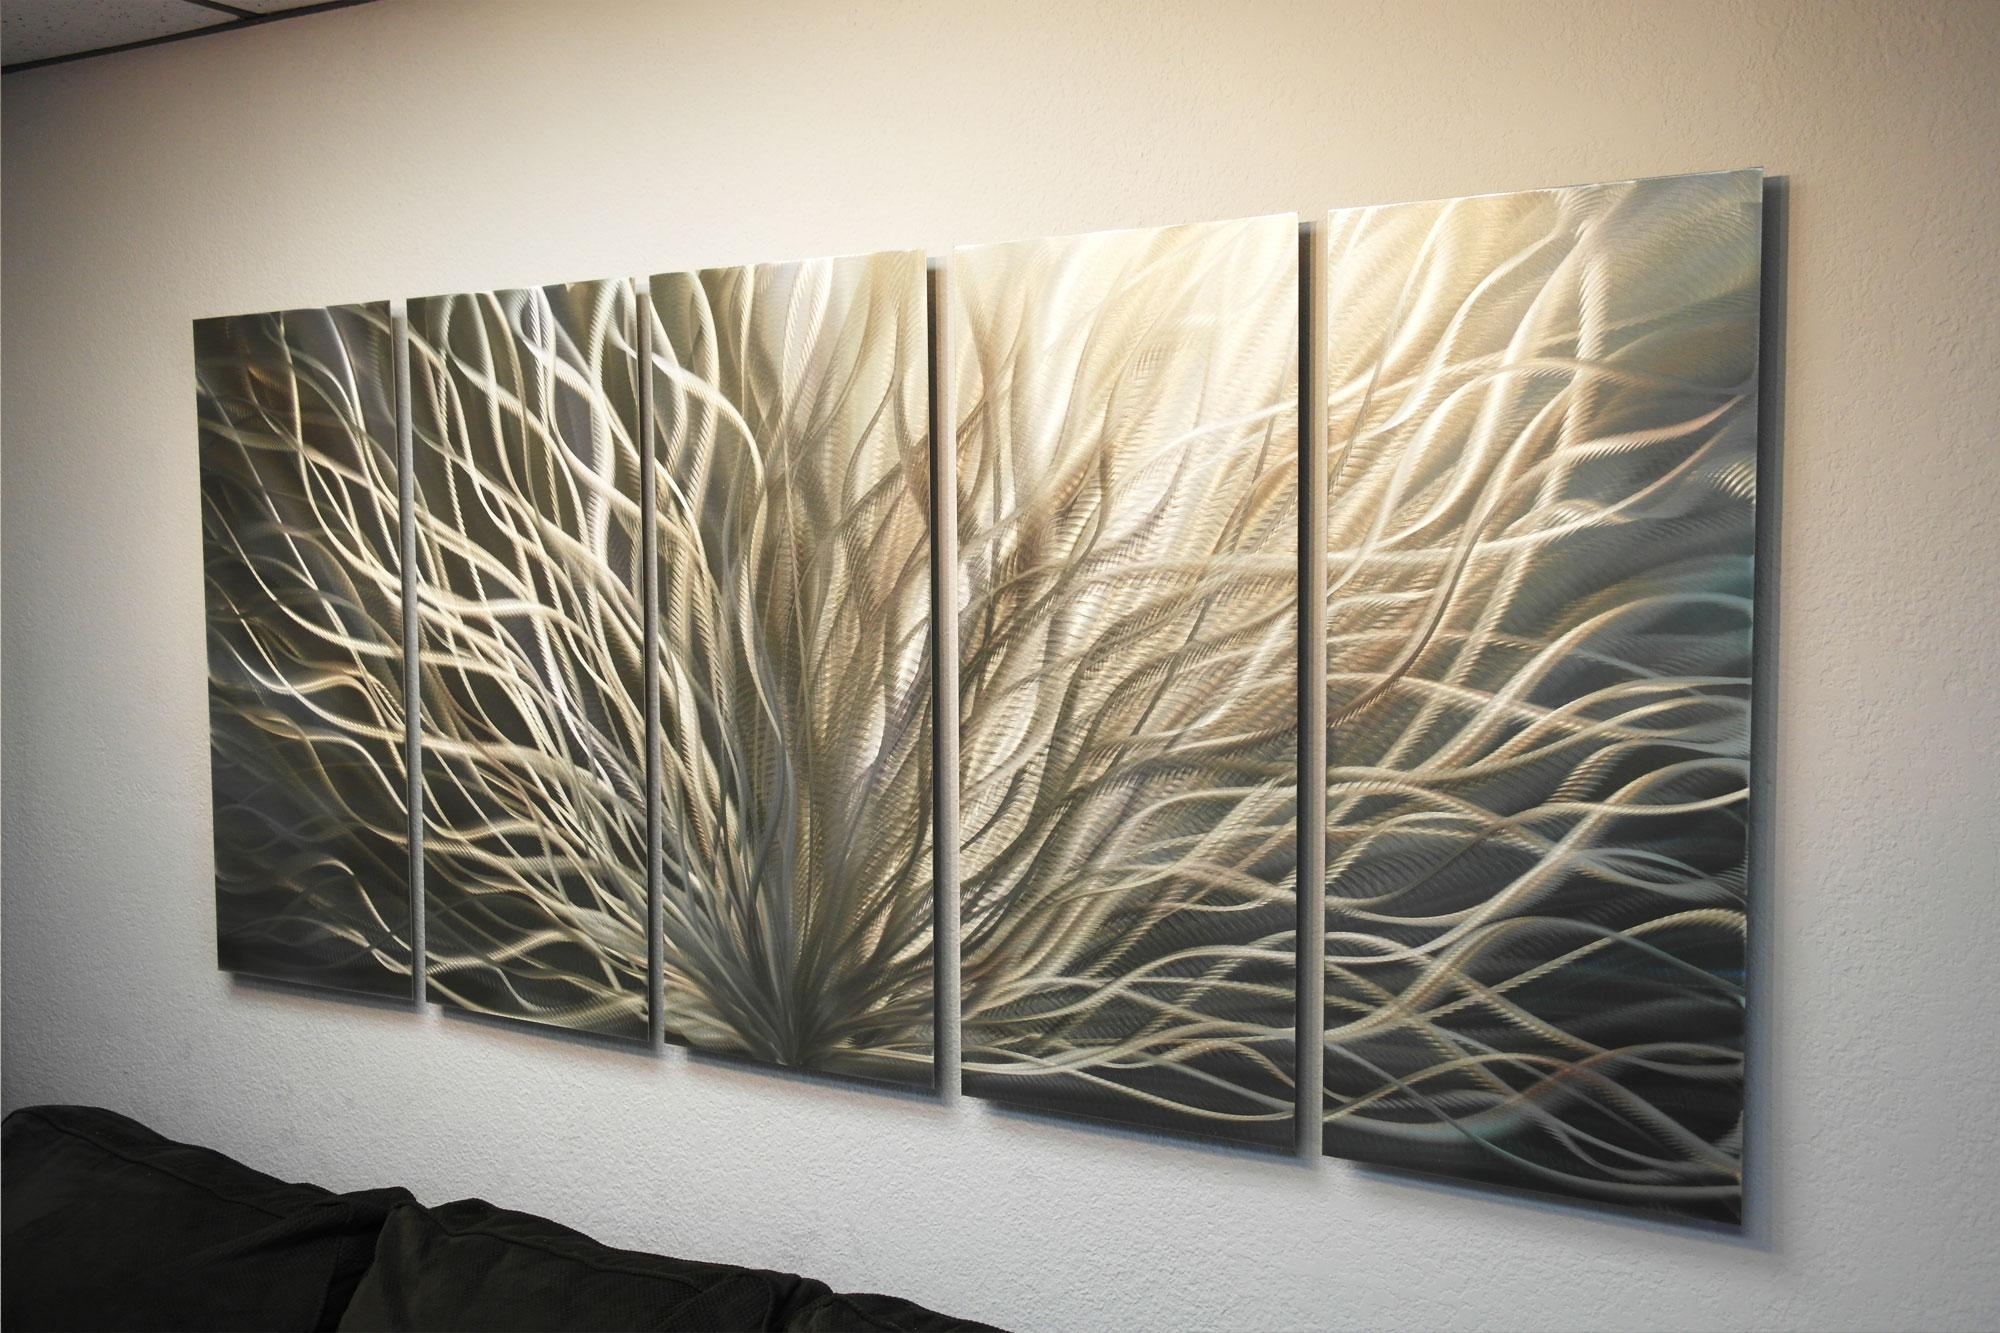 Radiance Gold Silver 36X79 - Metal Wall Art Abstract Sculpture within Silver and Gold Wall Art